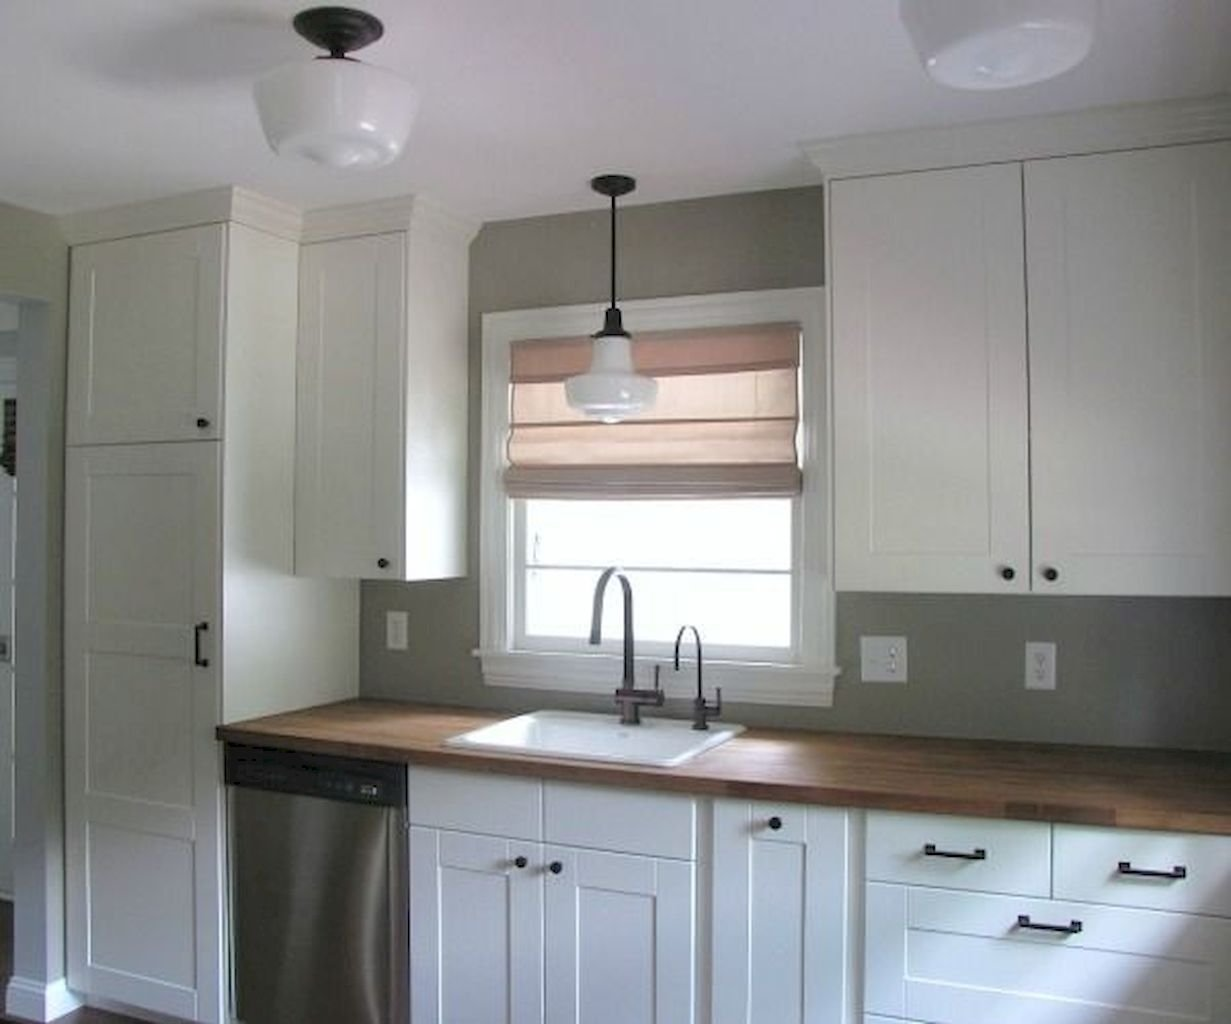 Kitchen Plan And Design For Small Room (165)